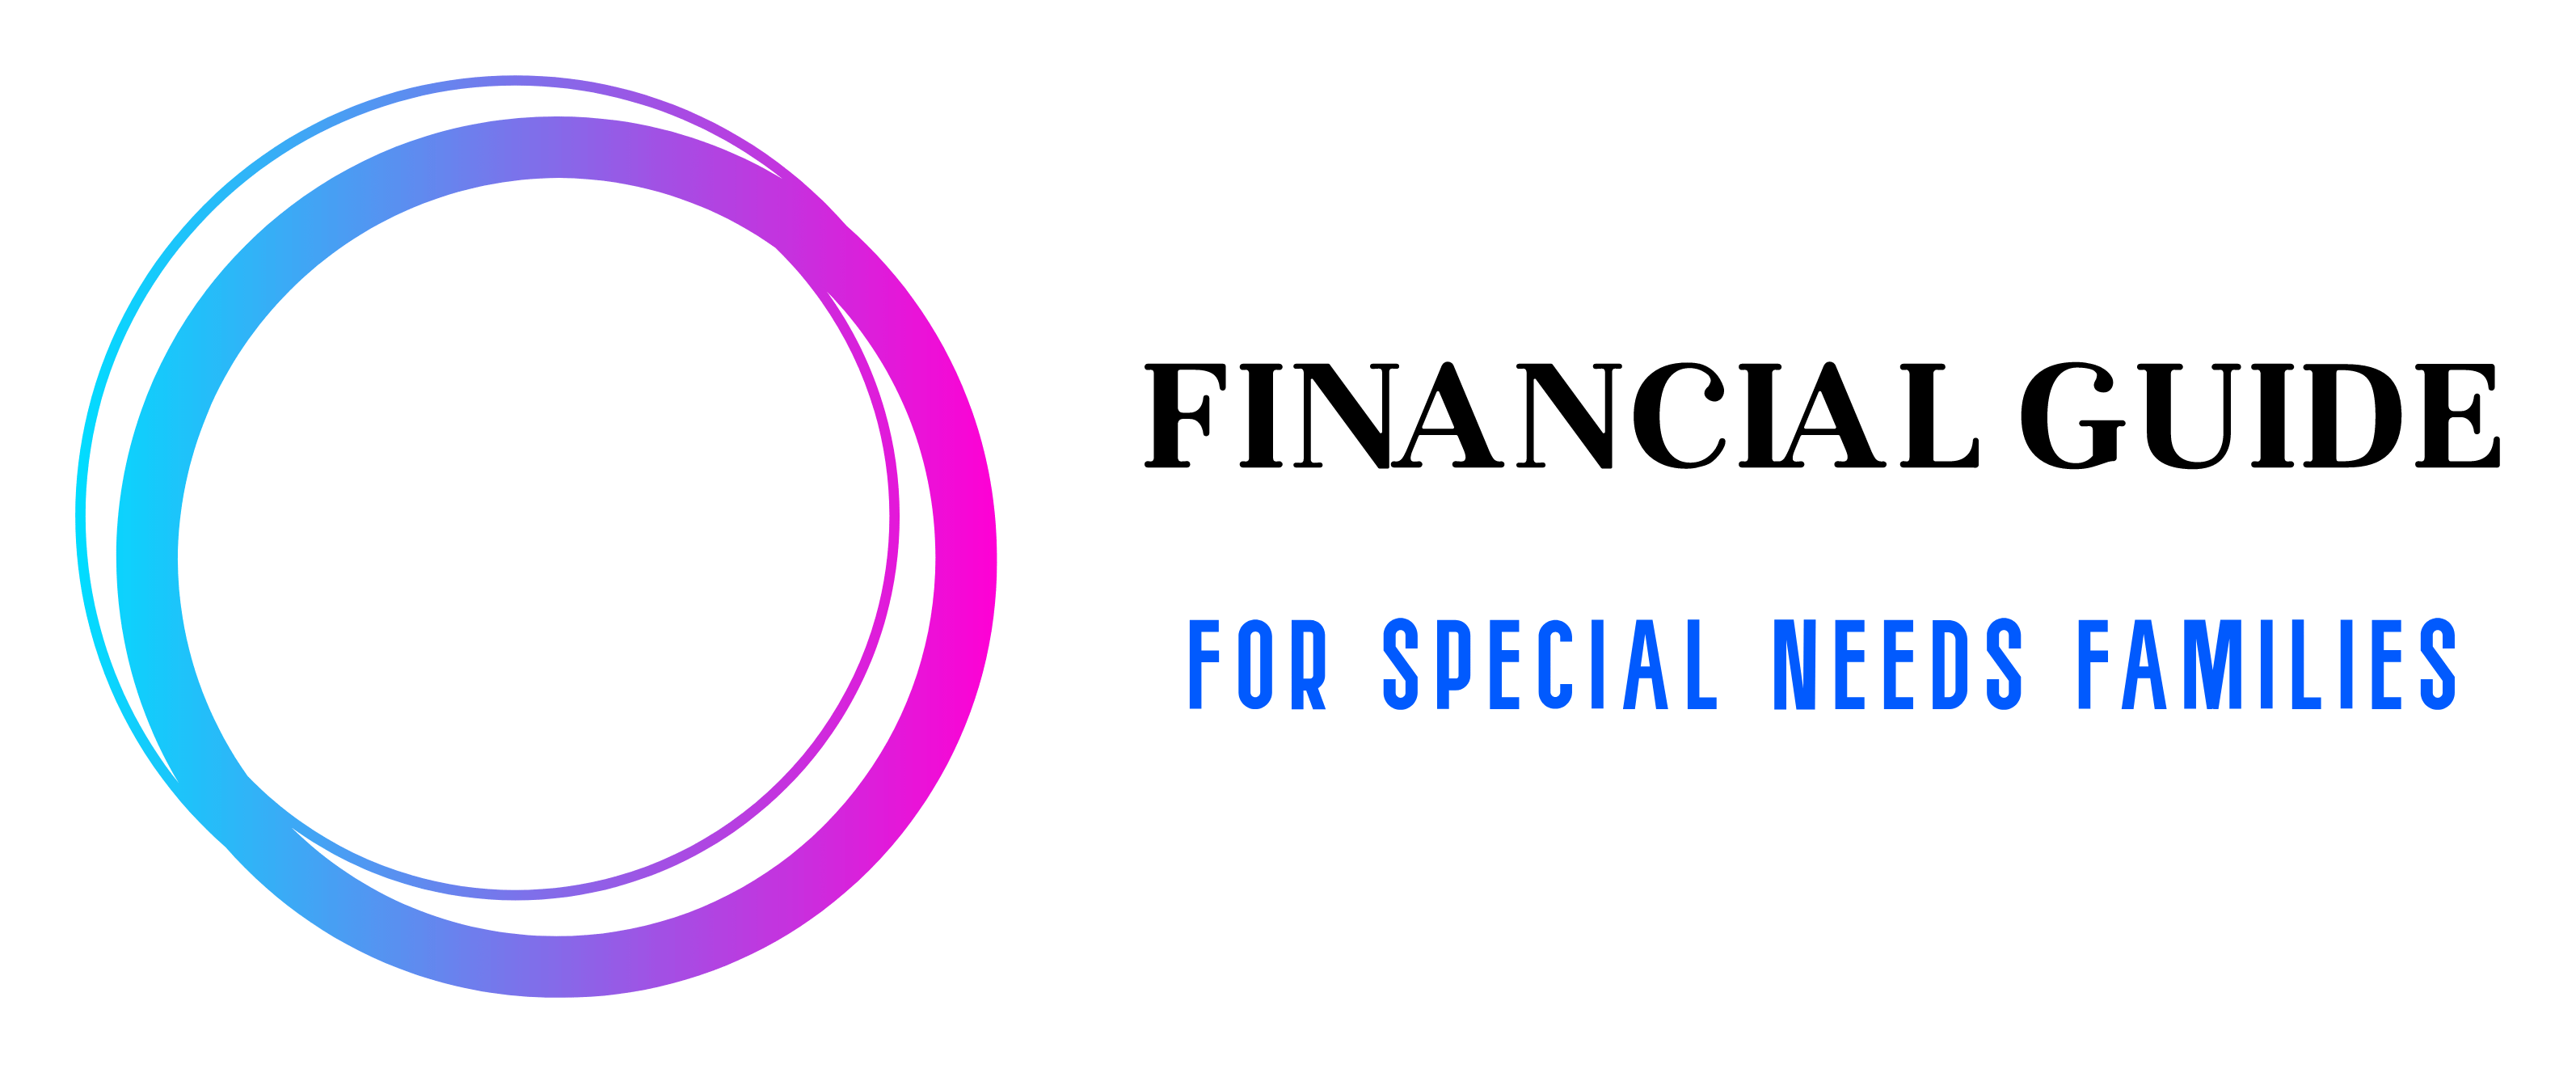 Financial Guidance for Special Needs Families